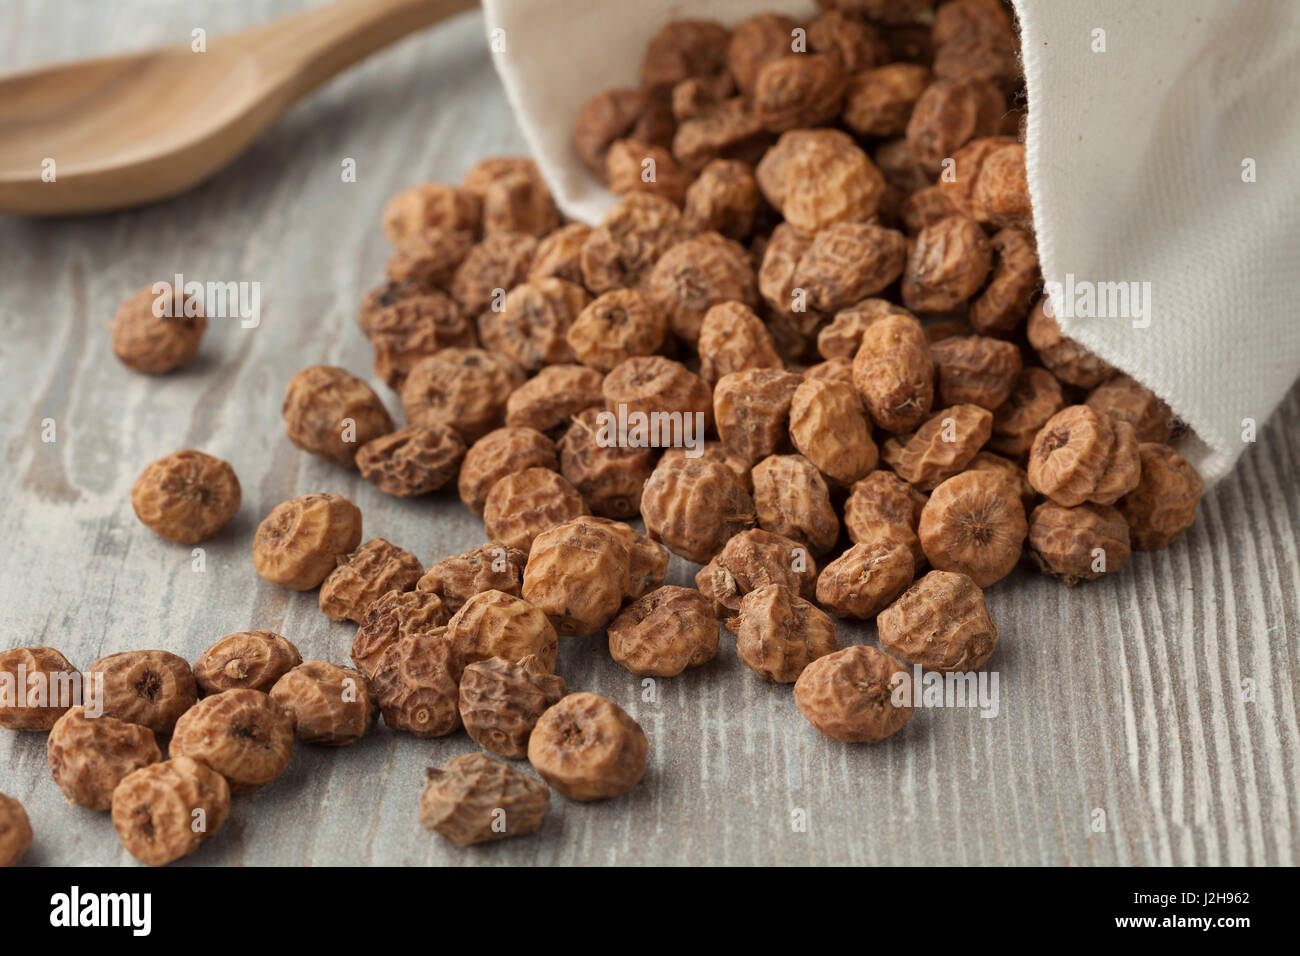 Sack with unshelled raw tiger nuts - Stock Image